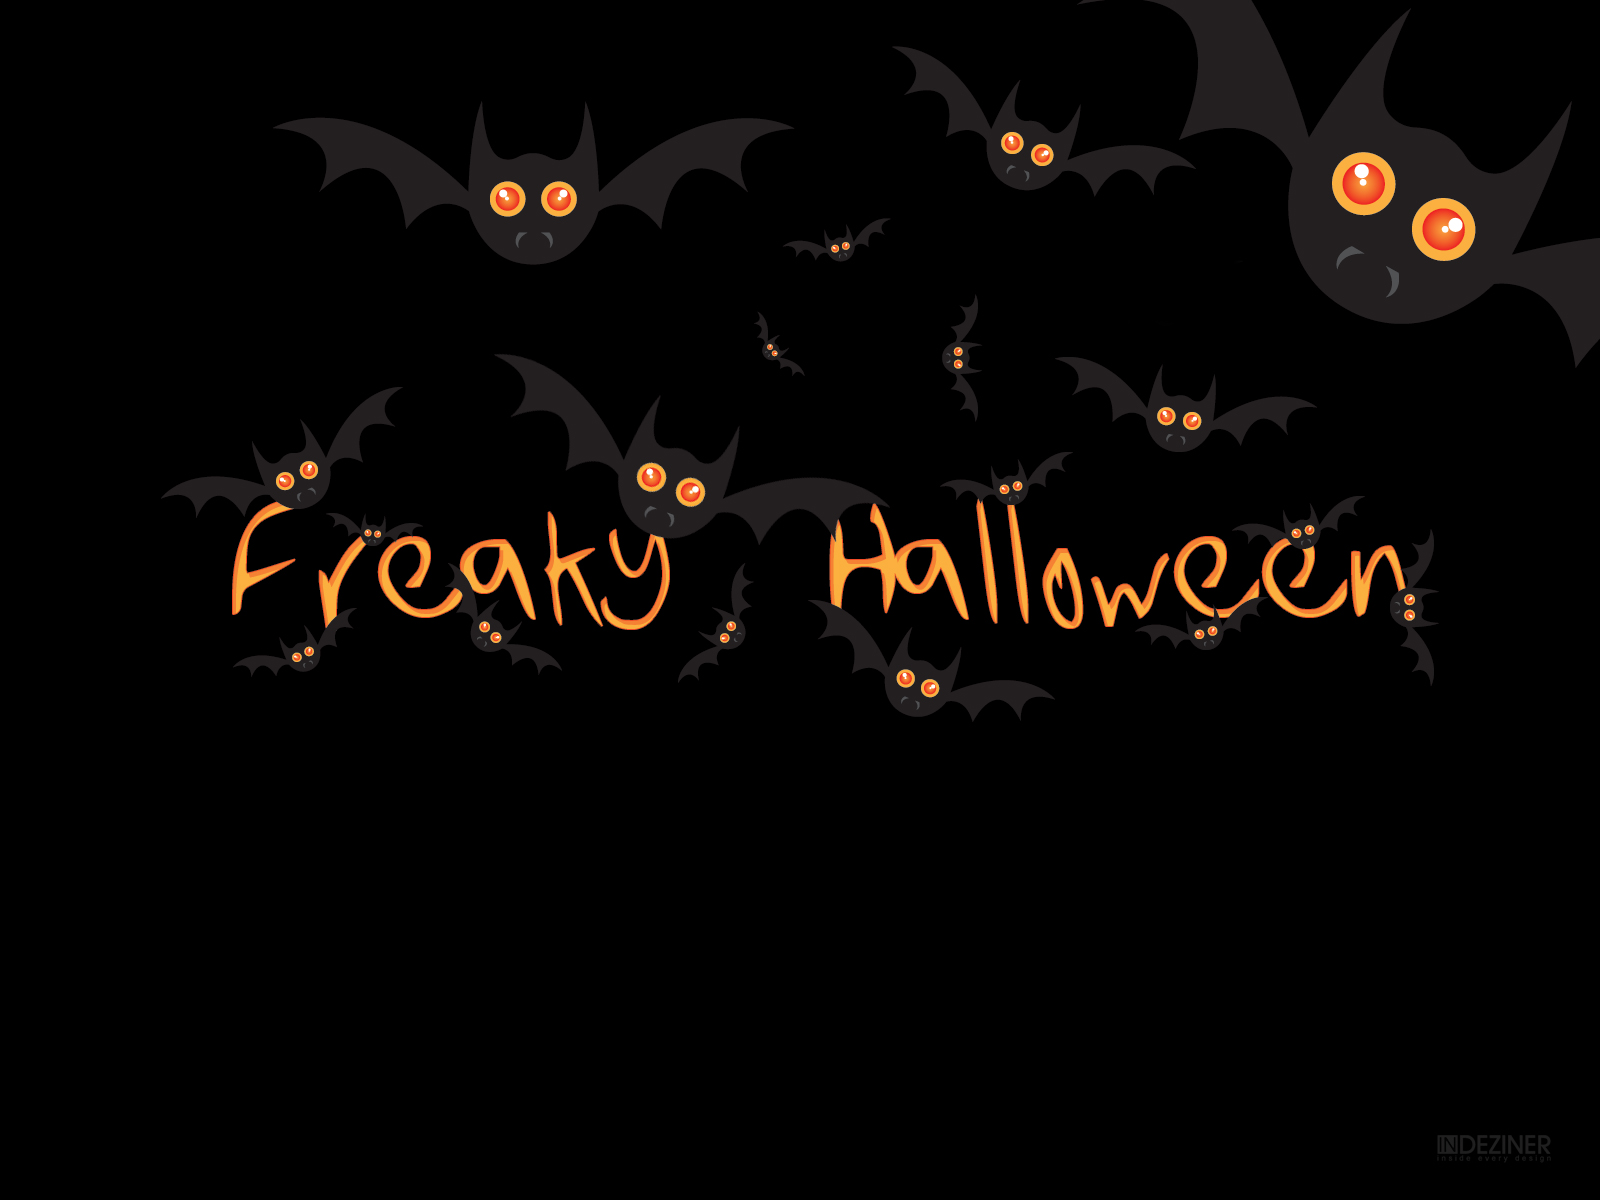 Image: Freaky Halloween Wallpapers And Stock Photos. «